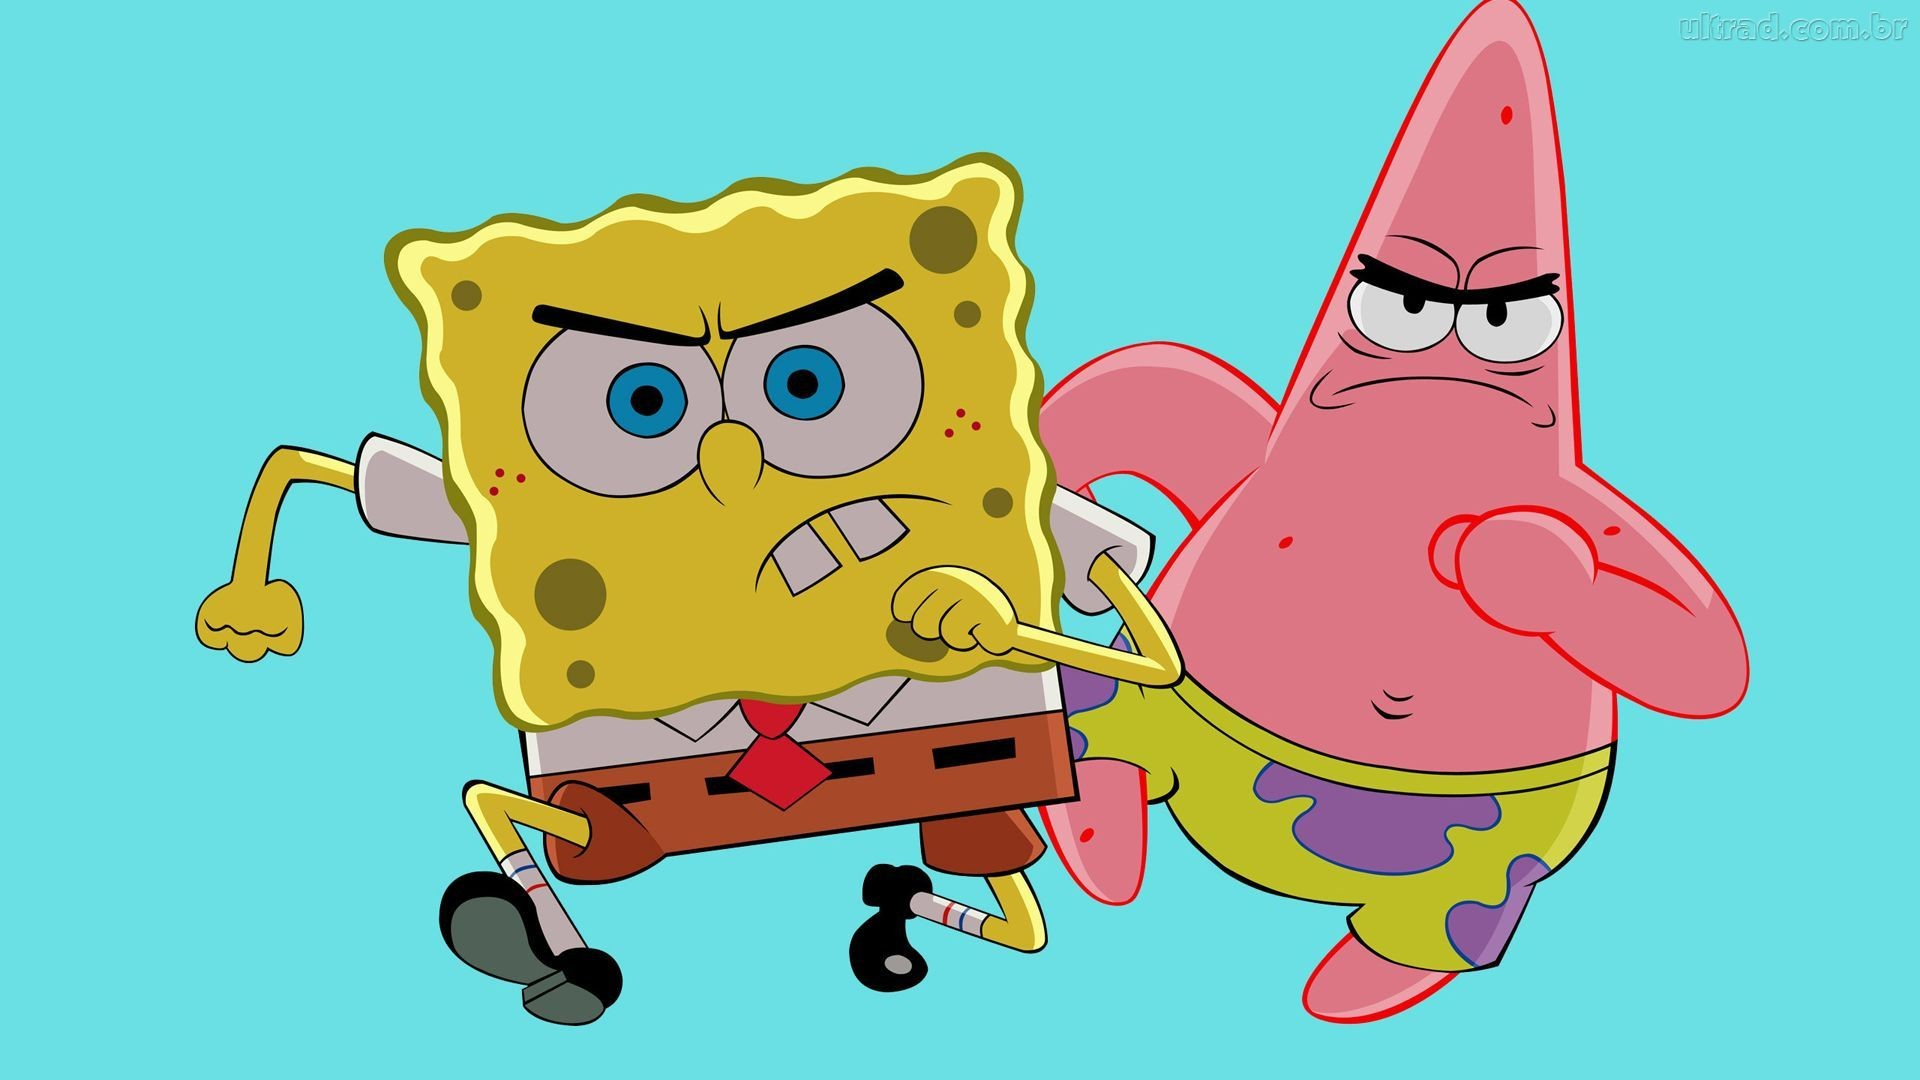 Res: 1920x1080, Funny Spongebob And Patrick Background 1 HD Wallpapers